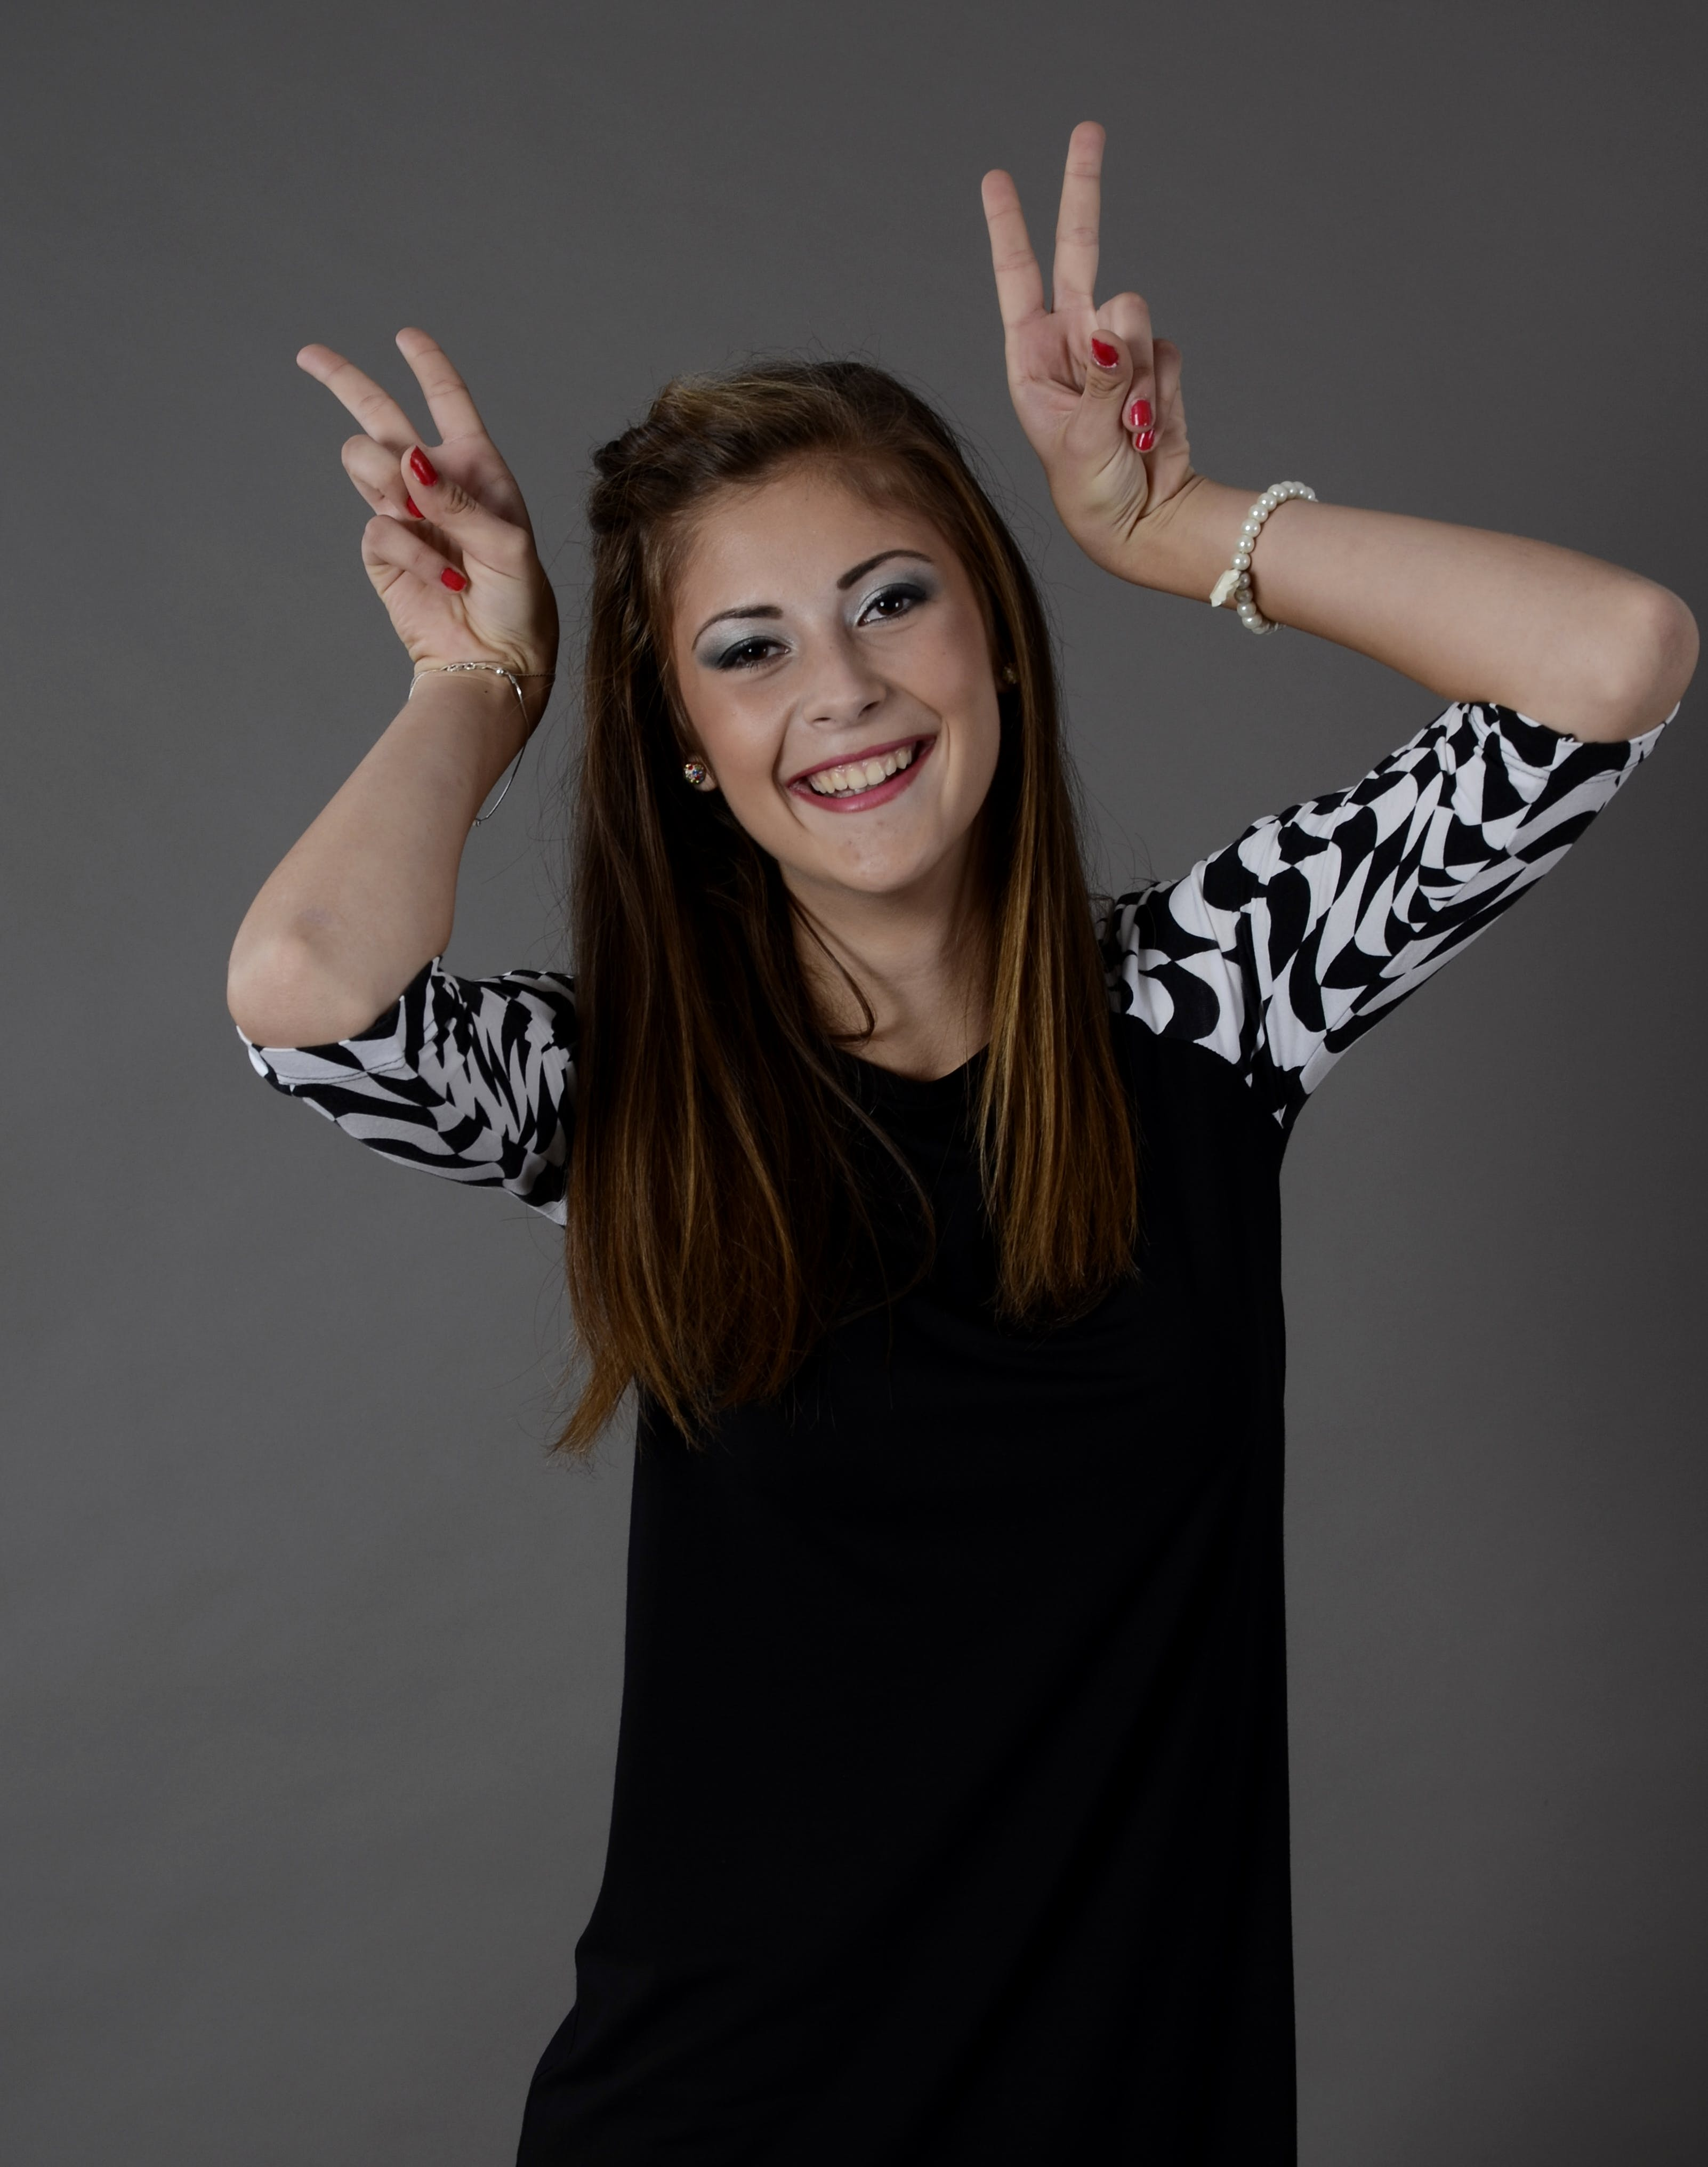 Woman Smiling and Doing Peace Signs